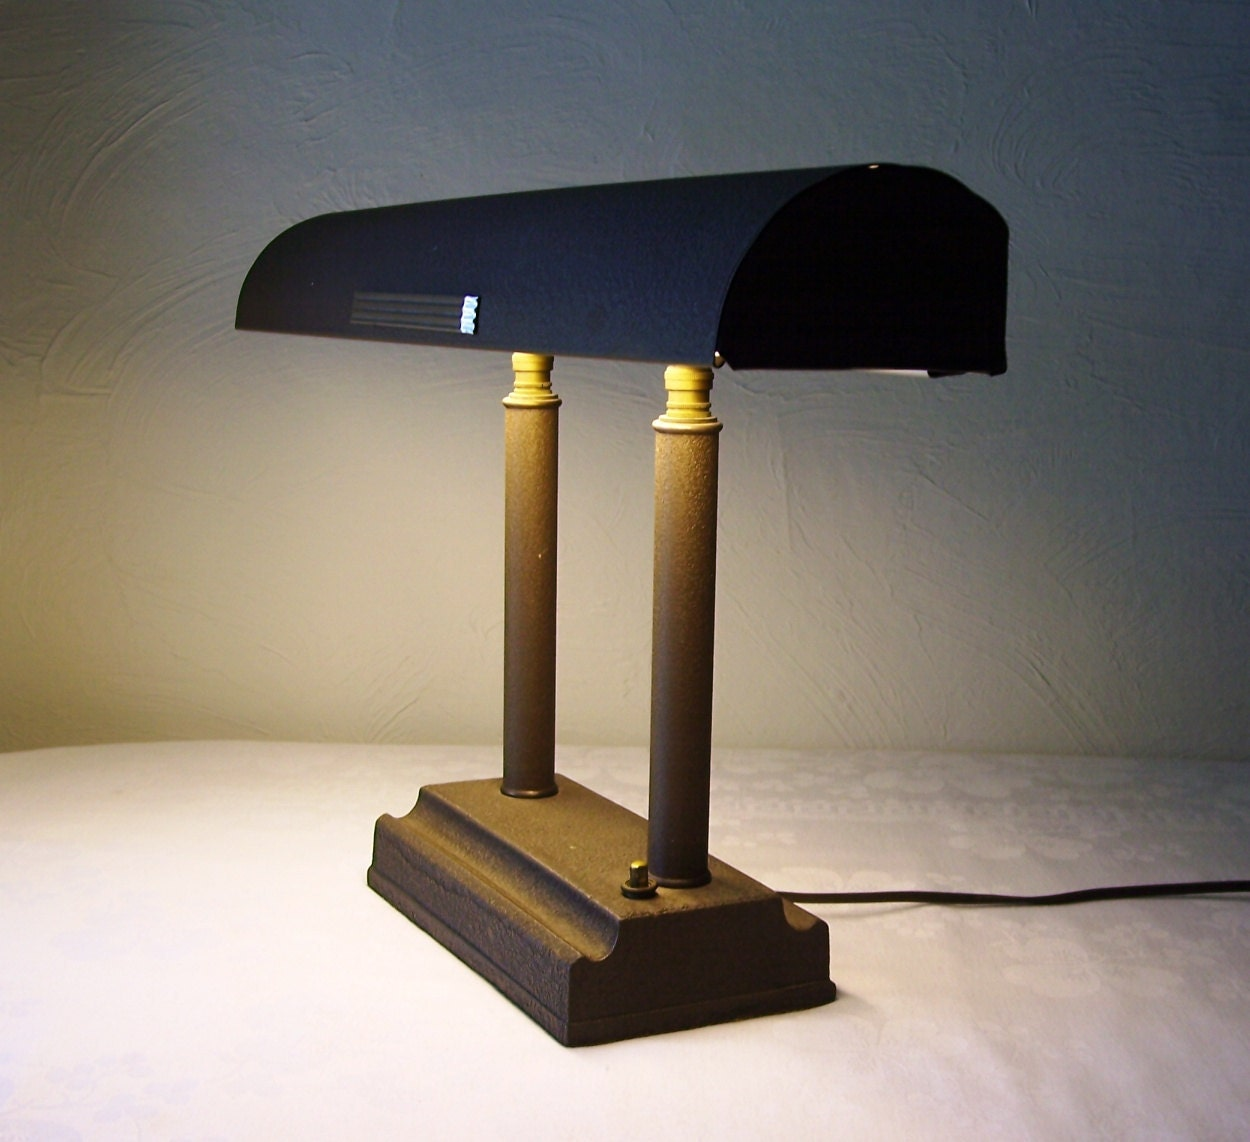 Vintage Art Deco Desk Lamp Adjustable Light